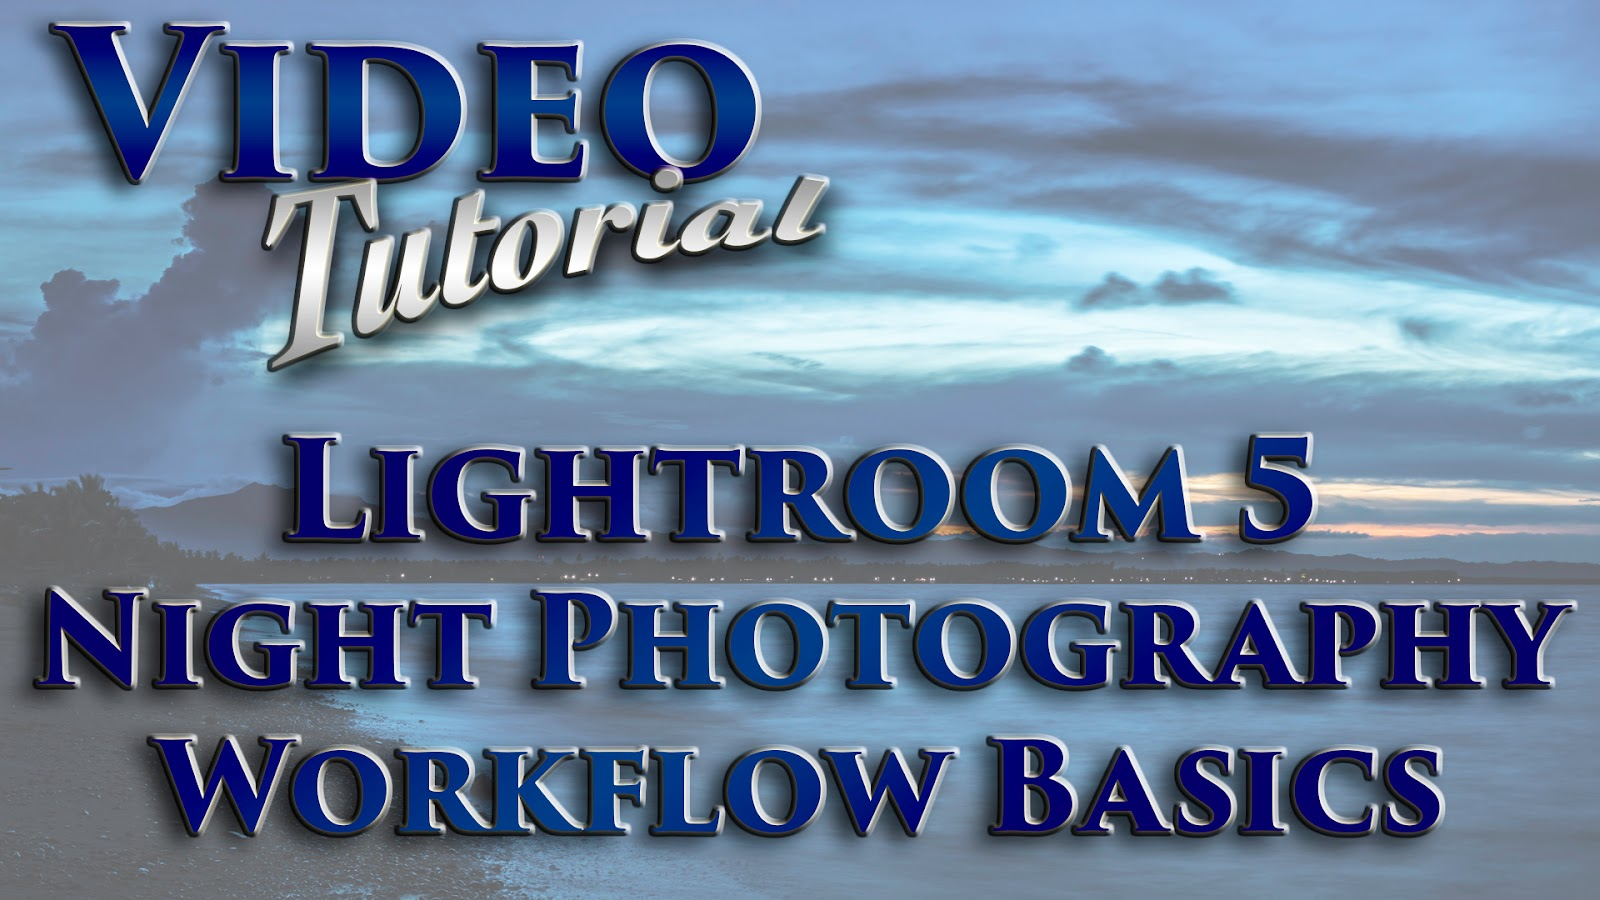 Lightroom 5 Night Photography Workflow Basics